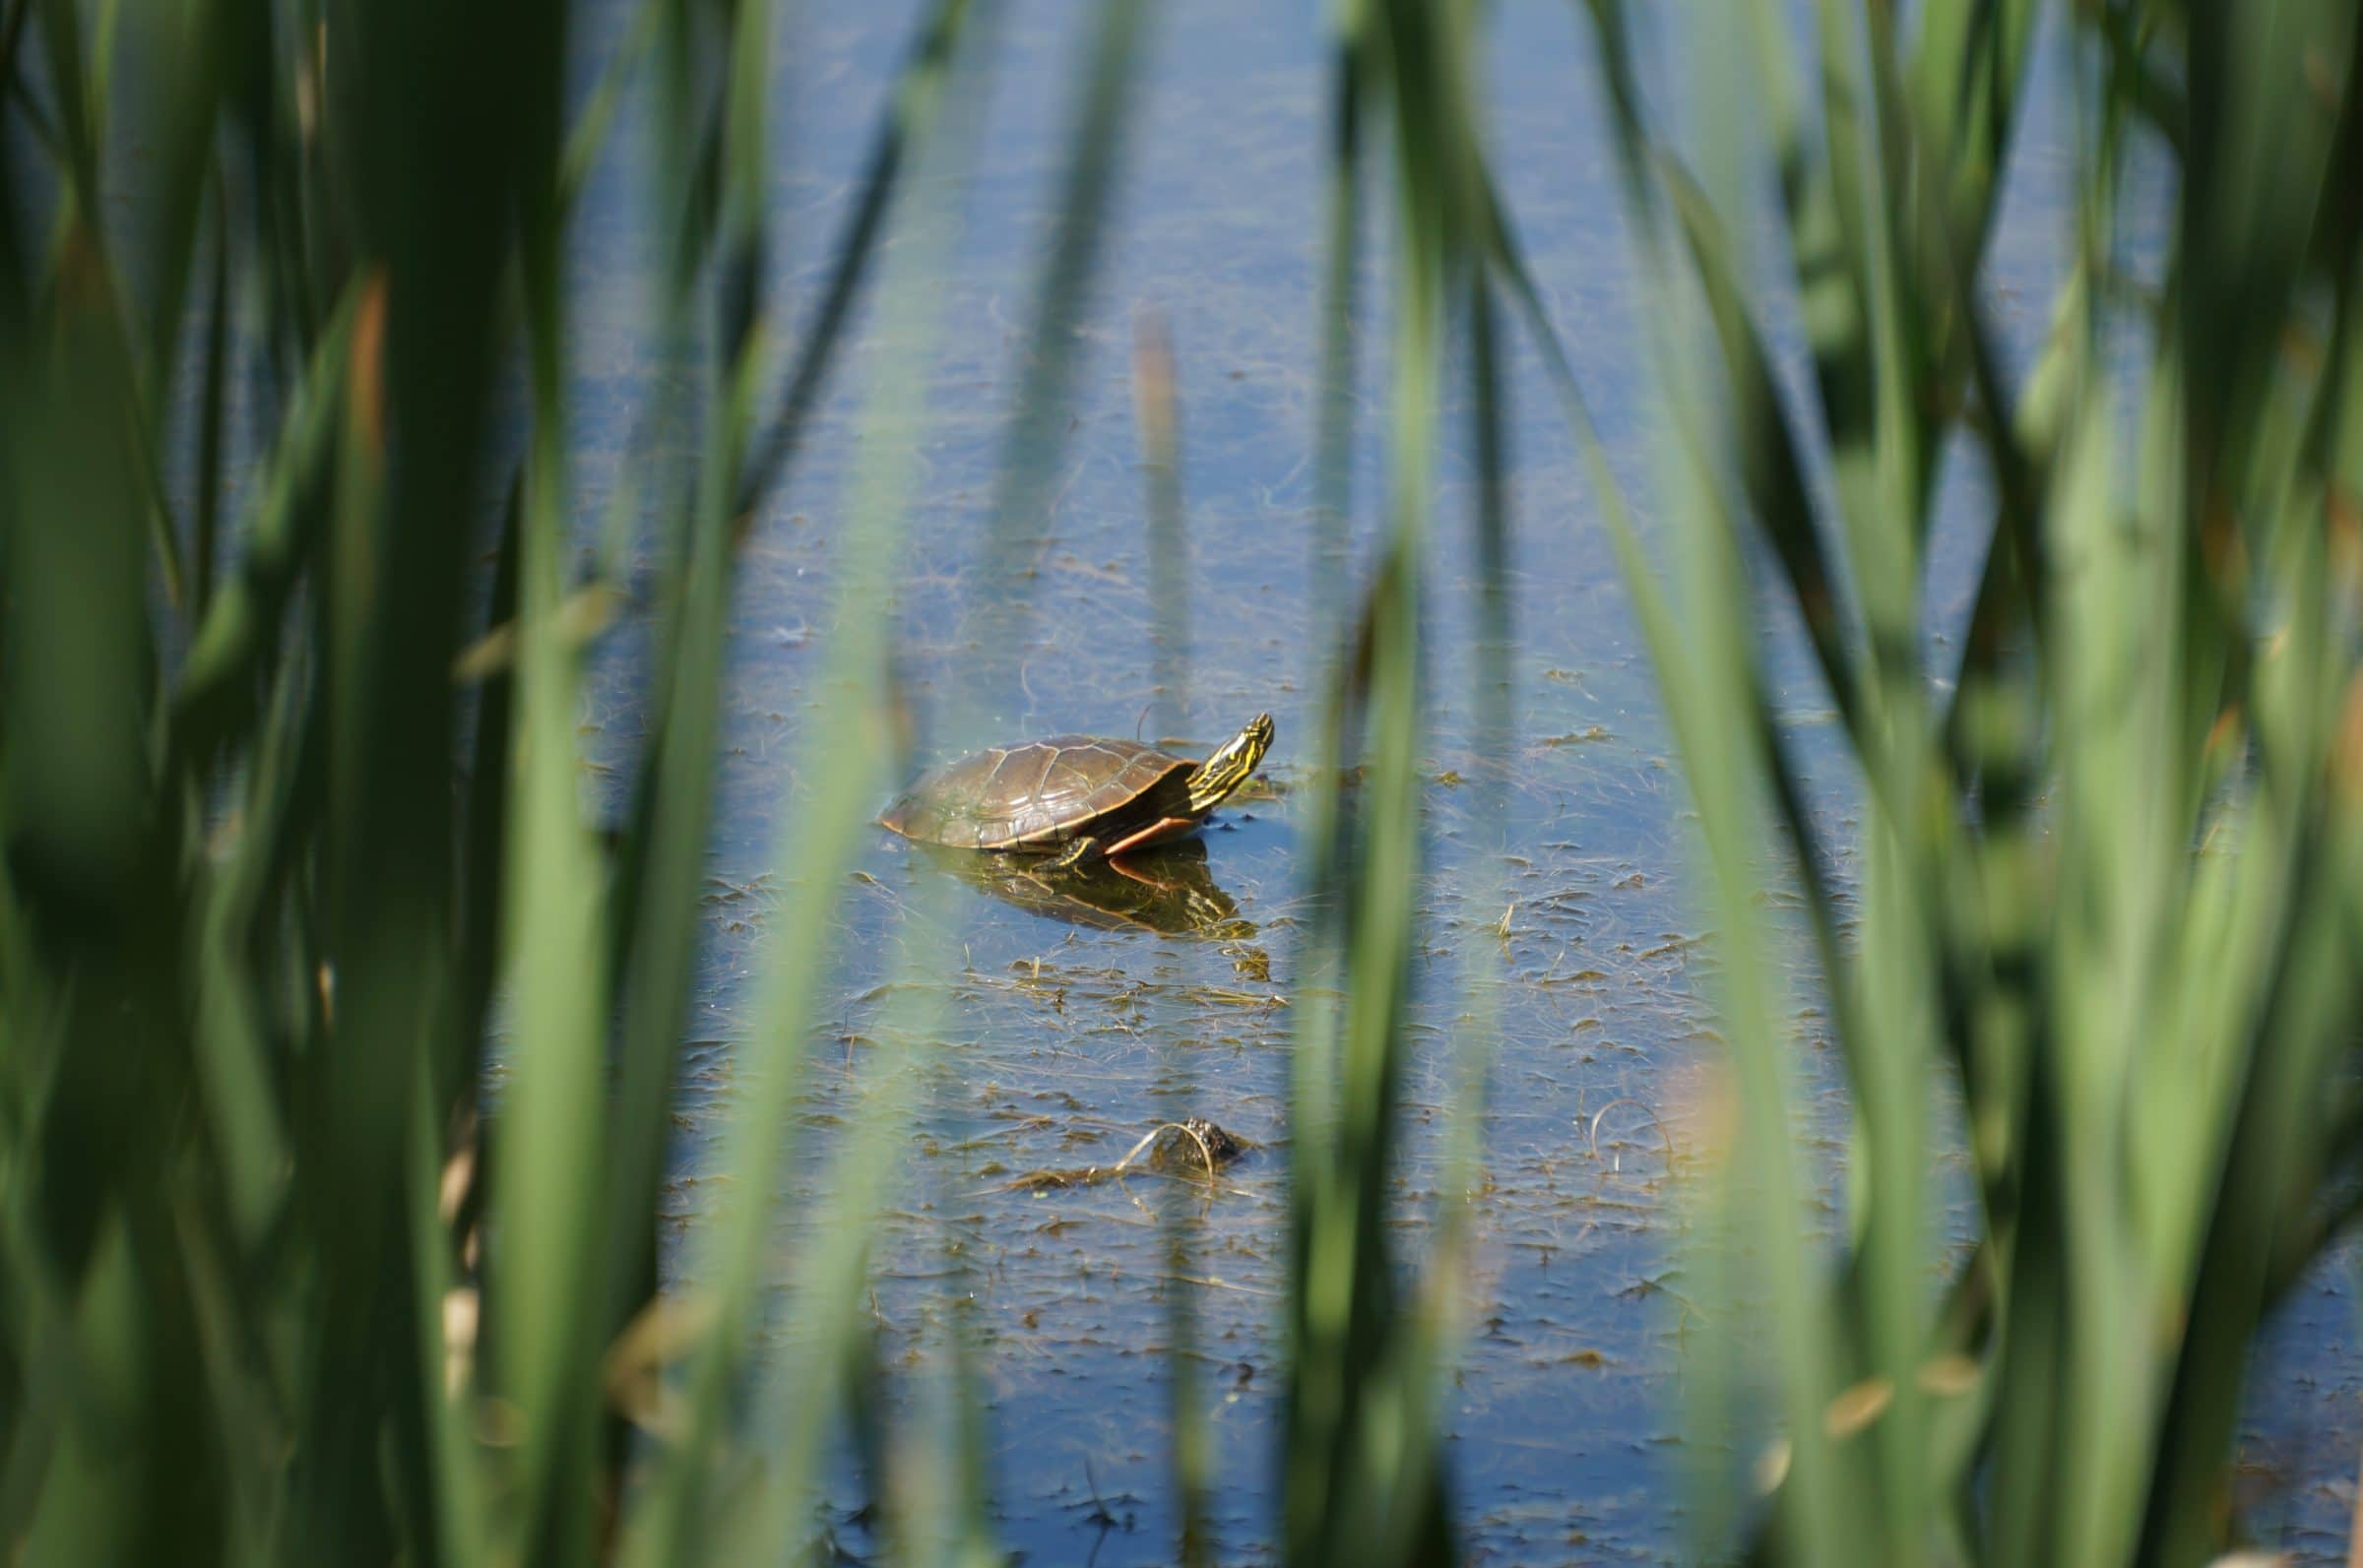 We see a turtle sitting in swampy water through thick green grass.